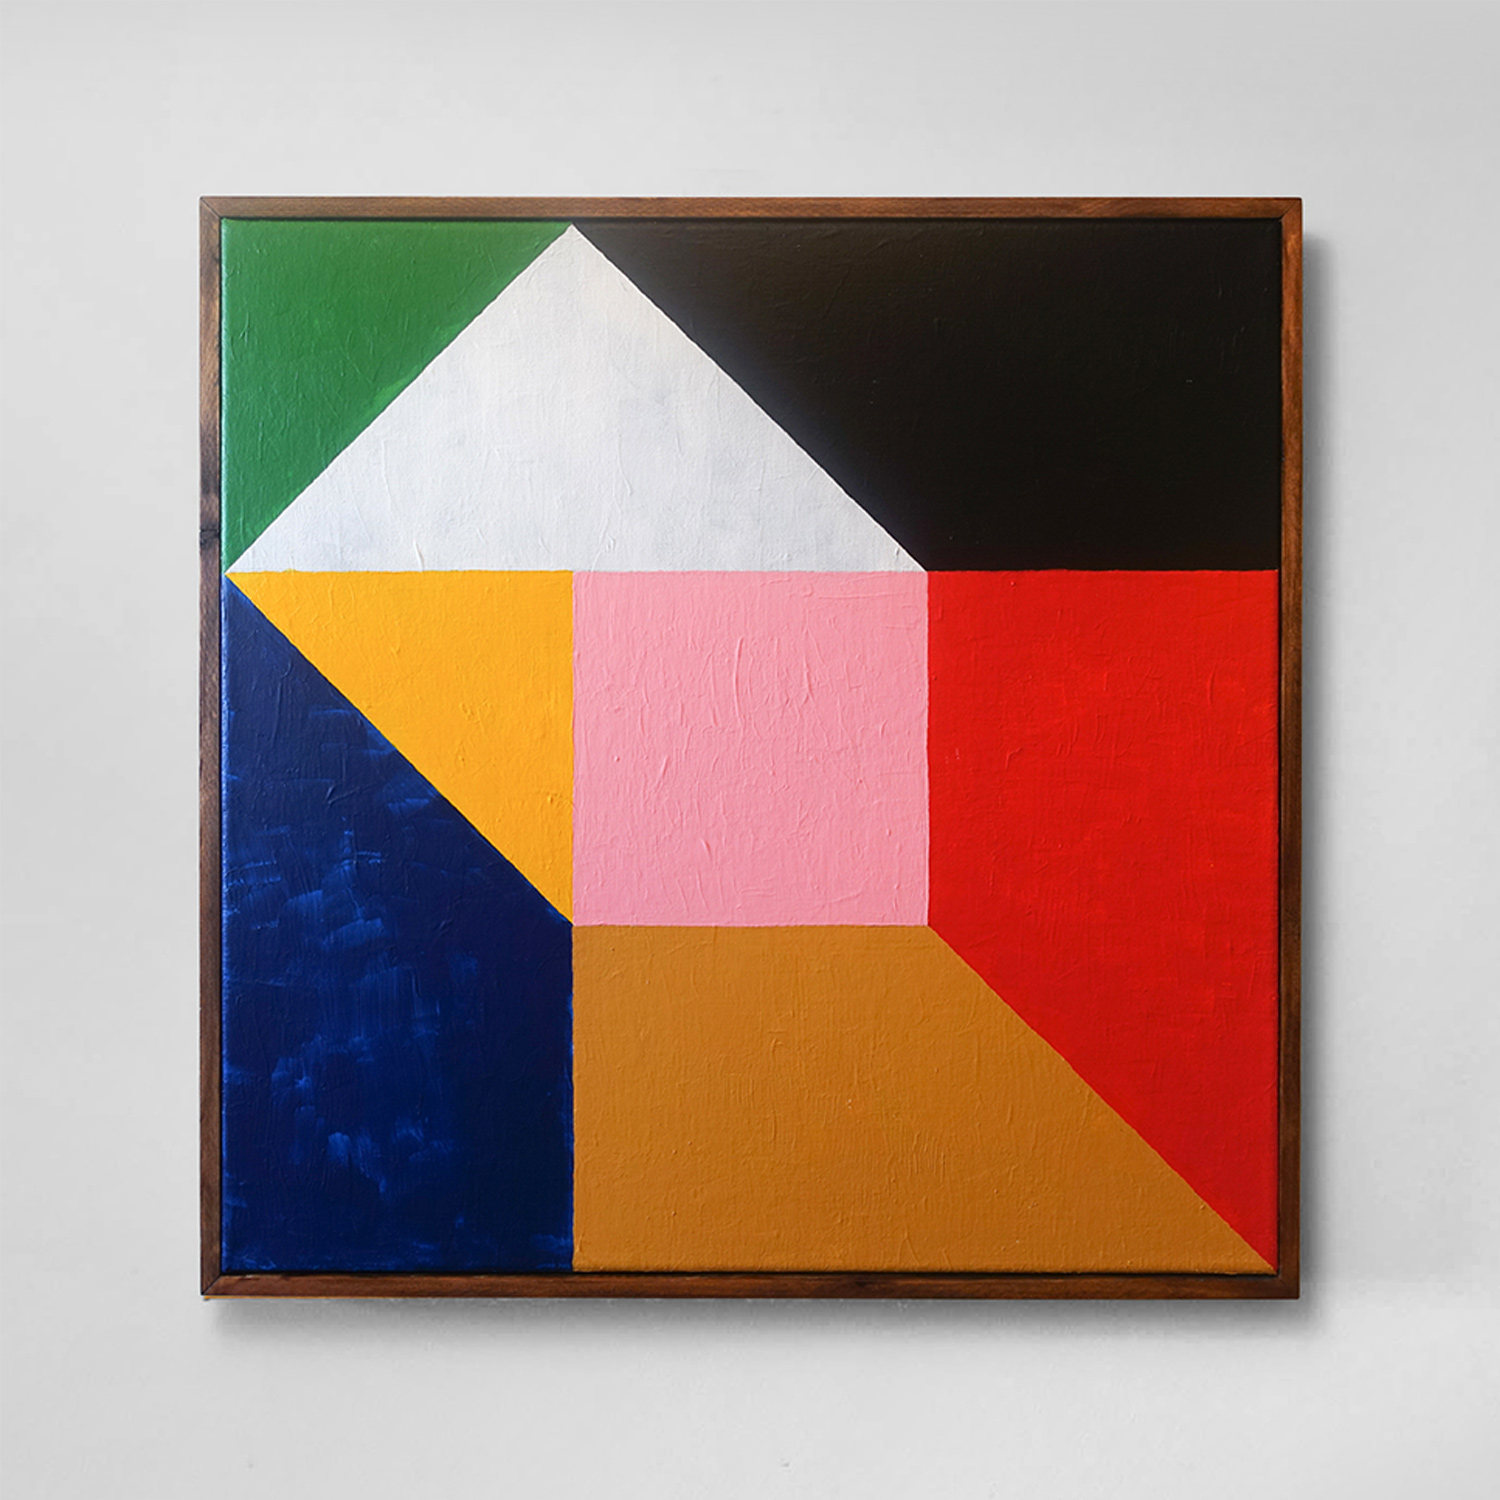 Square Composition No. 7  60 x 60 cm | acrylic on linen, pine frame | 2018